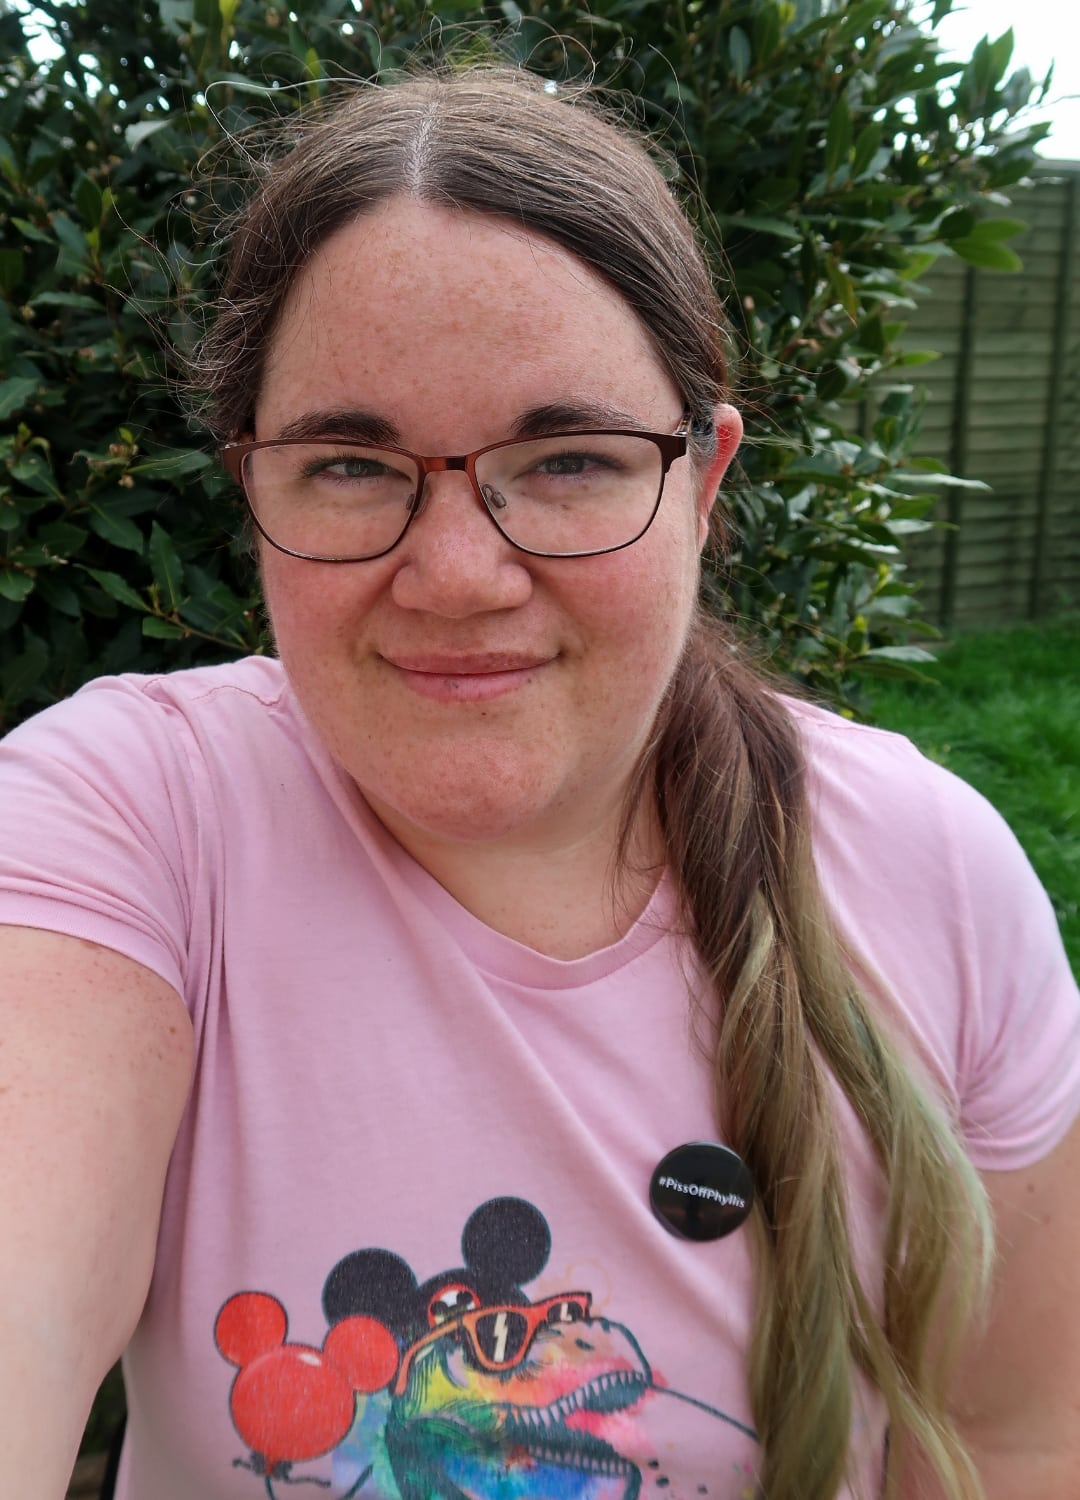 Me with pink t-shirt